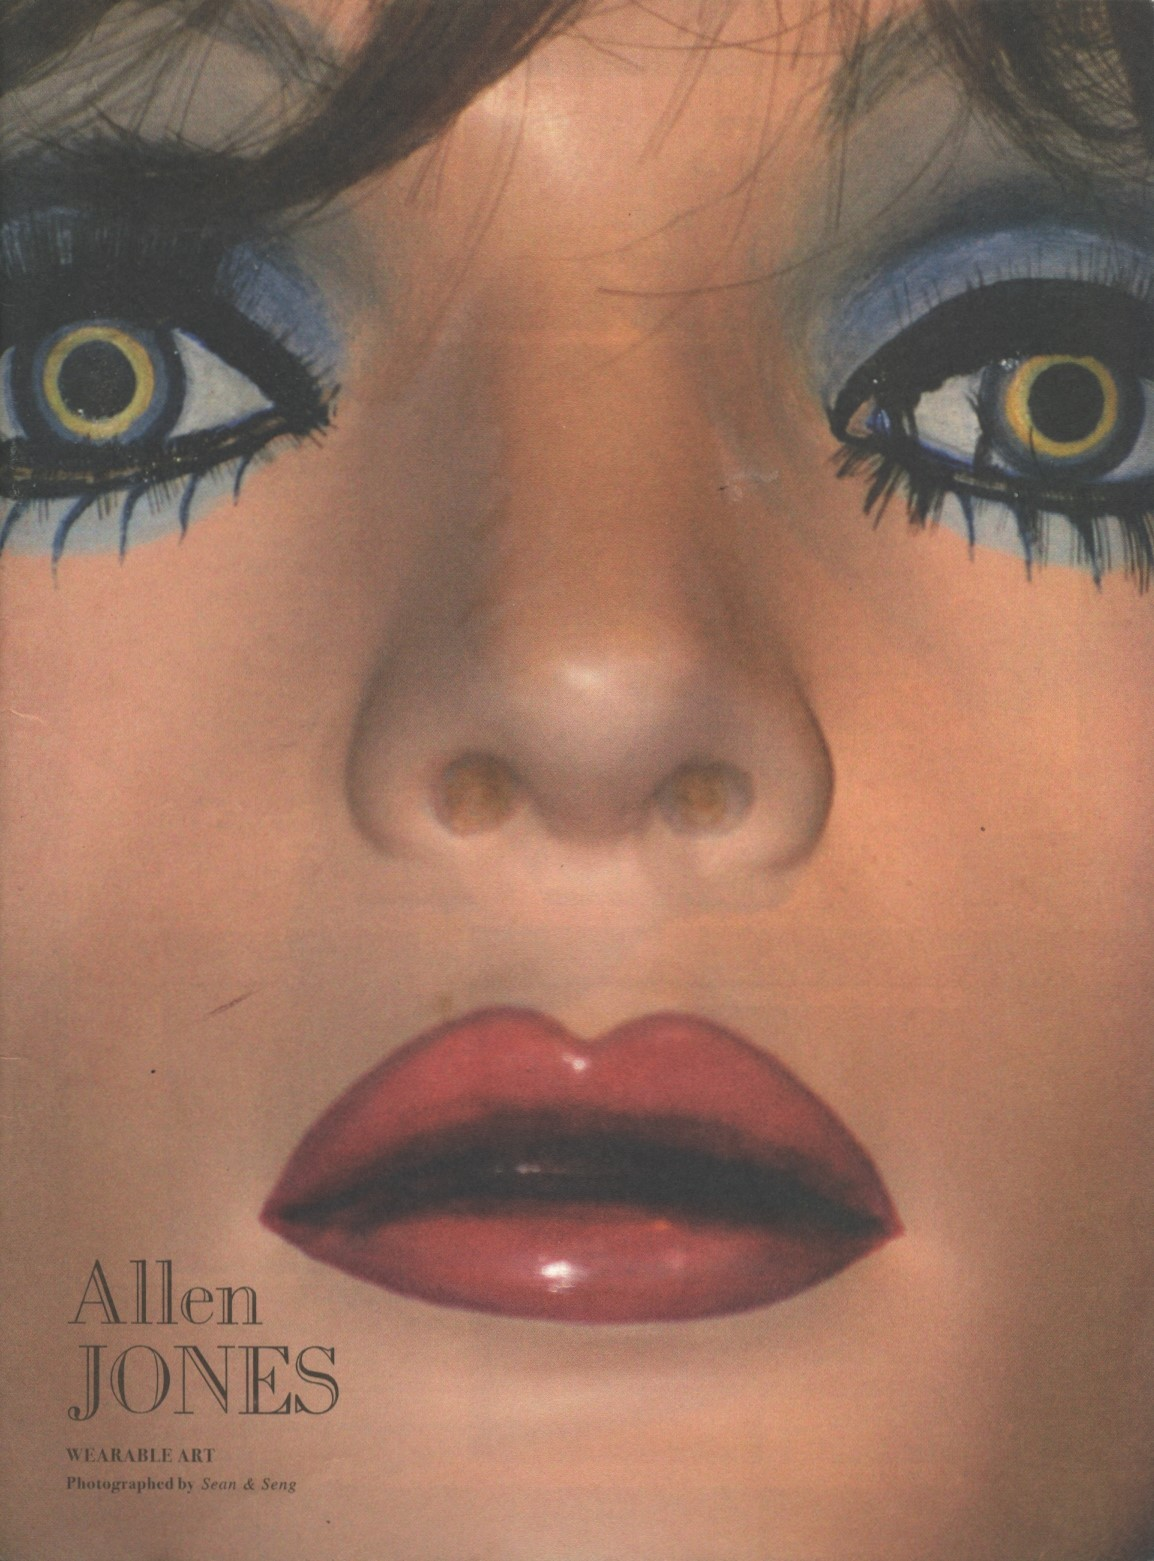 allen jones wearable art photography sean and seng supplement pop magazine 22 ss 2010